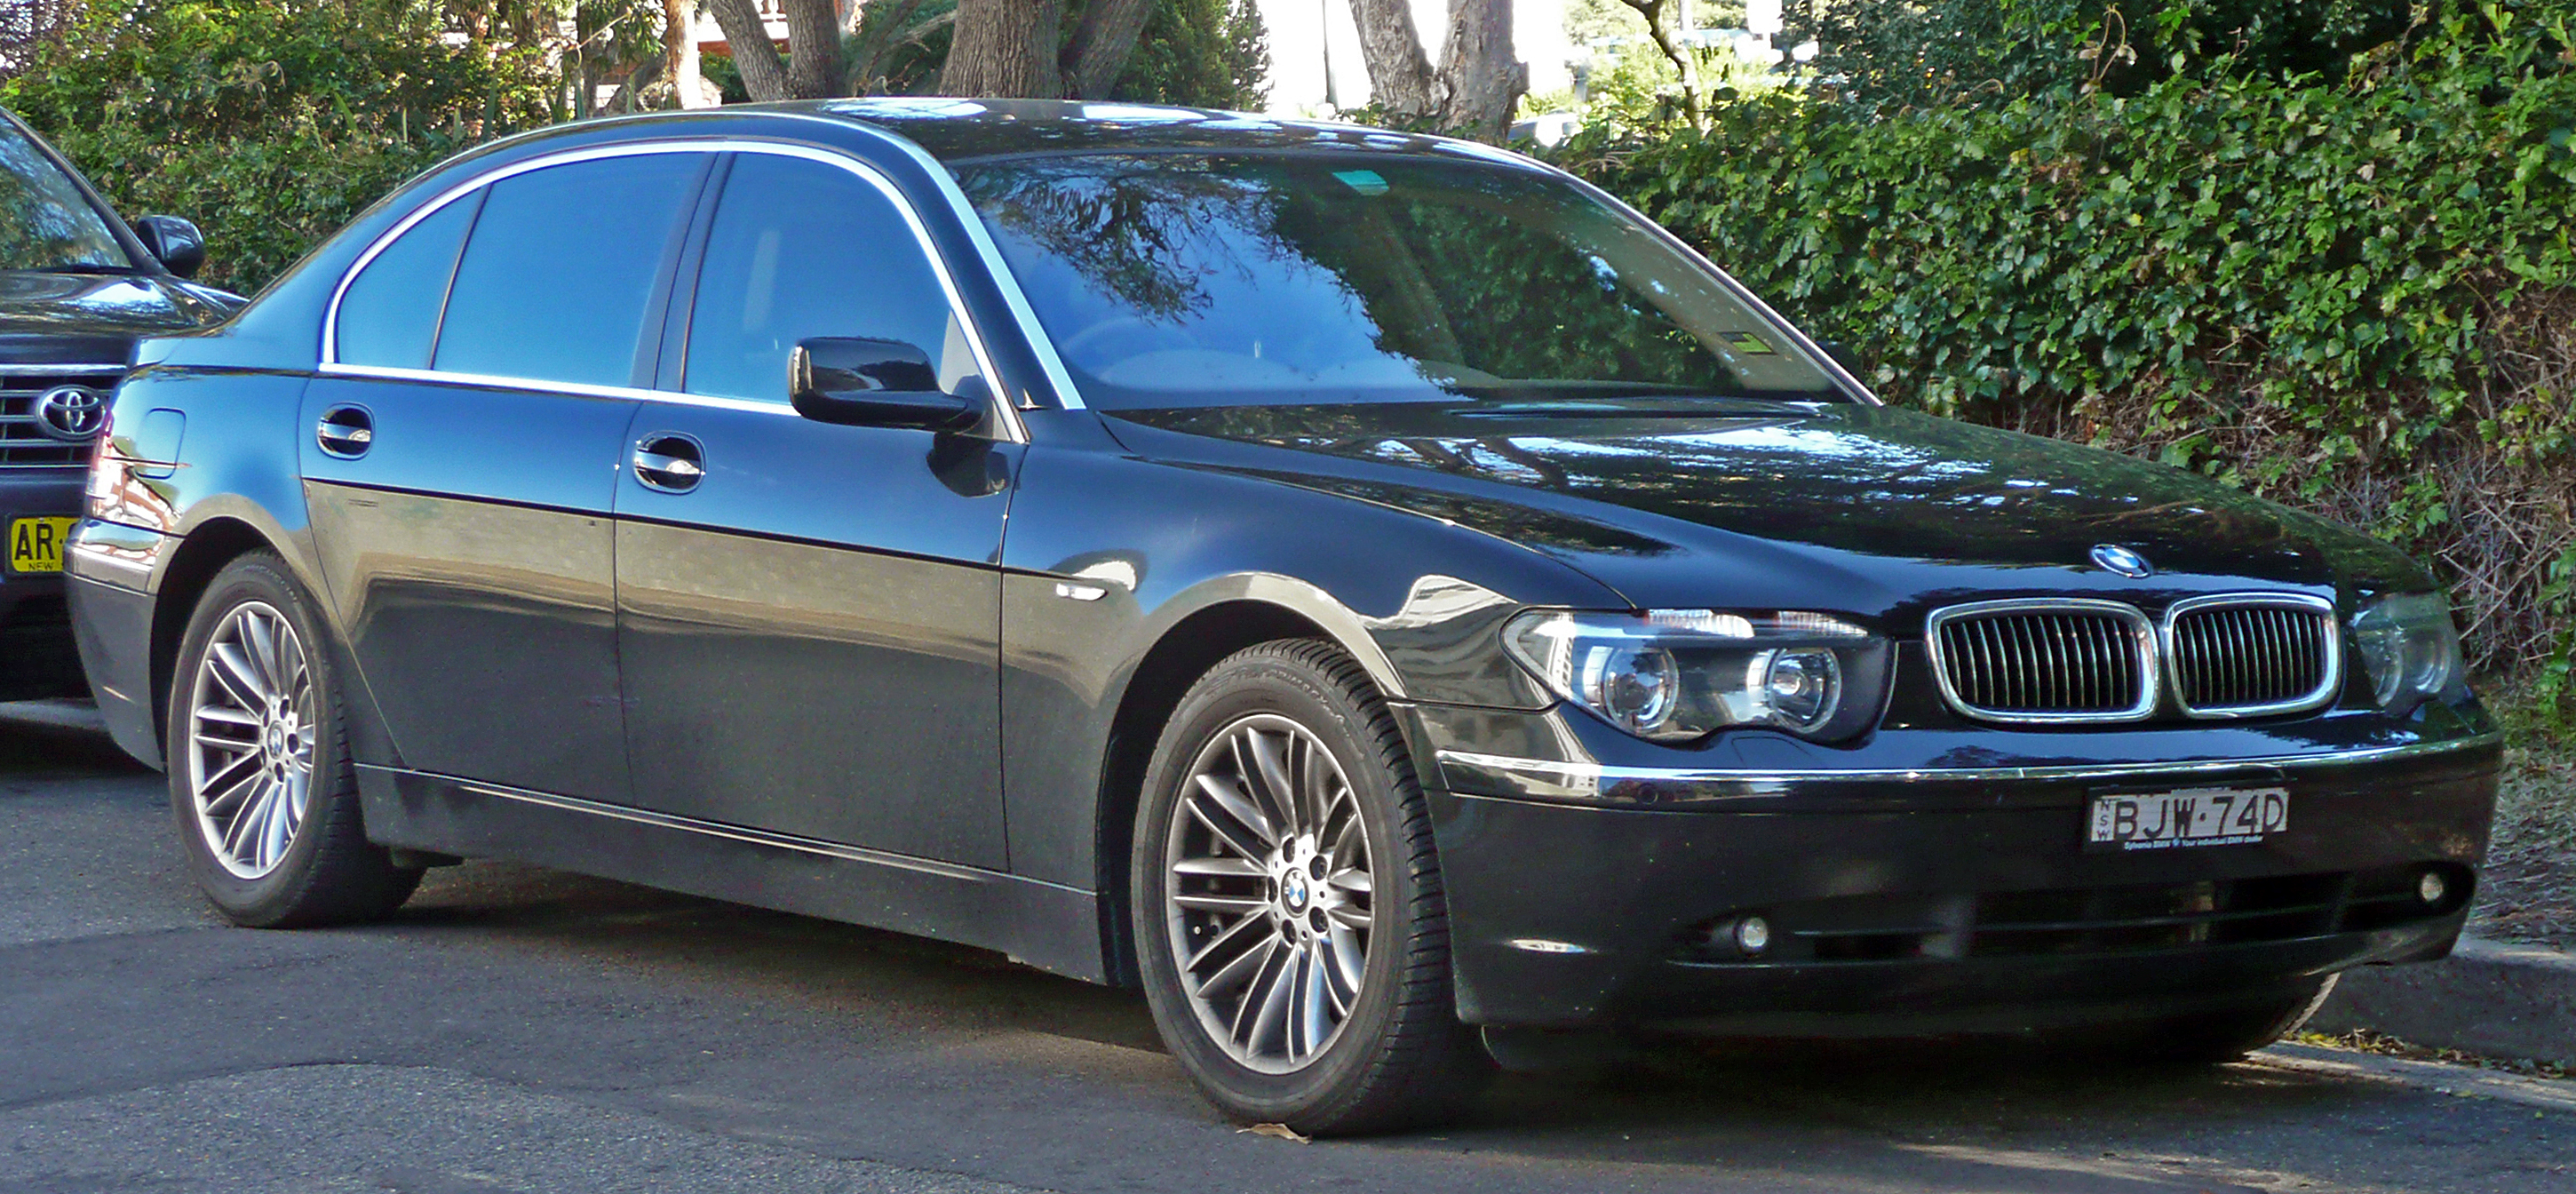 Second Hand 2004 Bmw 735li Car For Sale With Very Good